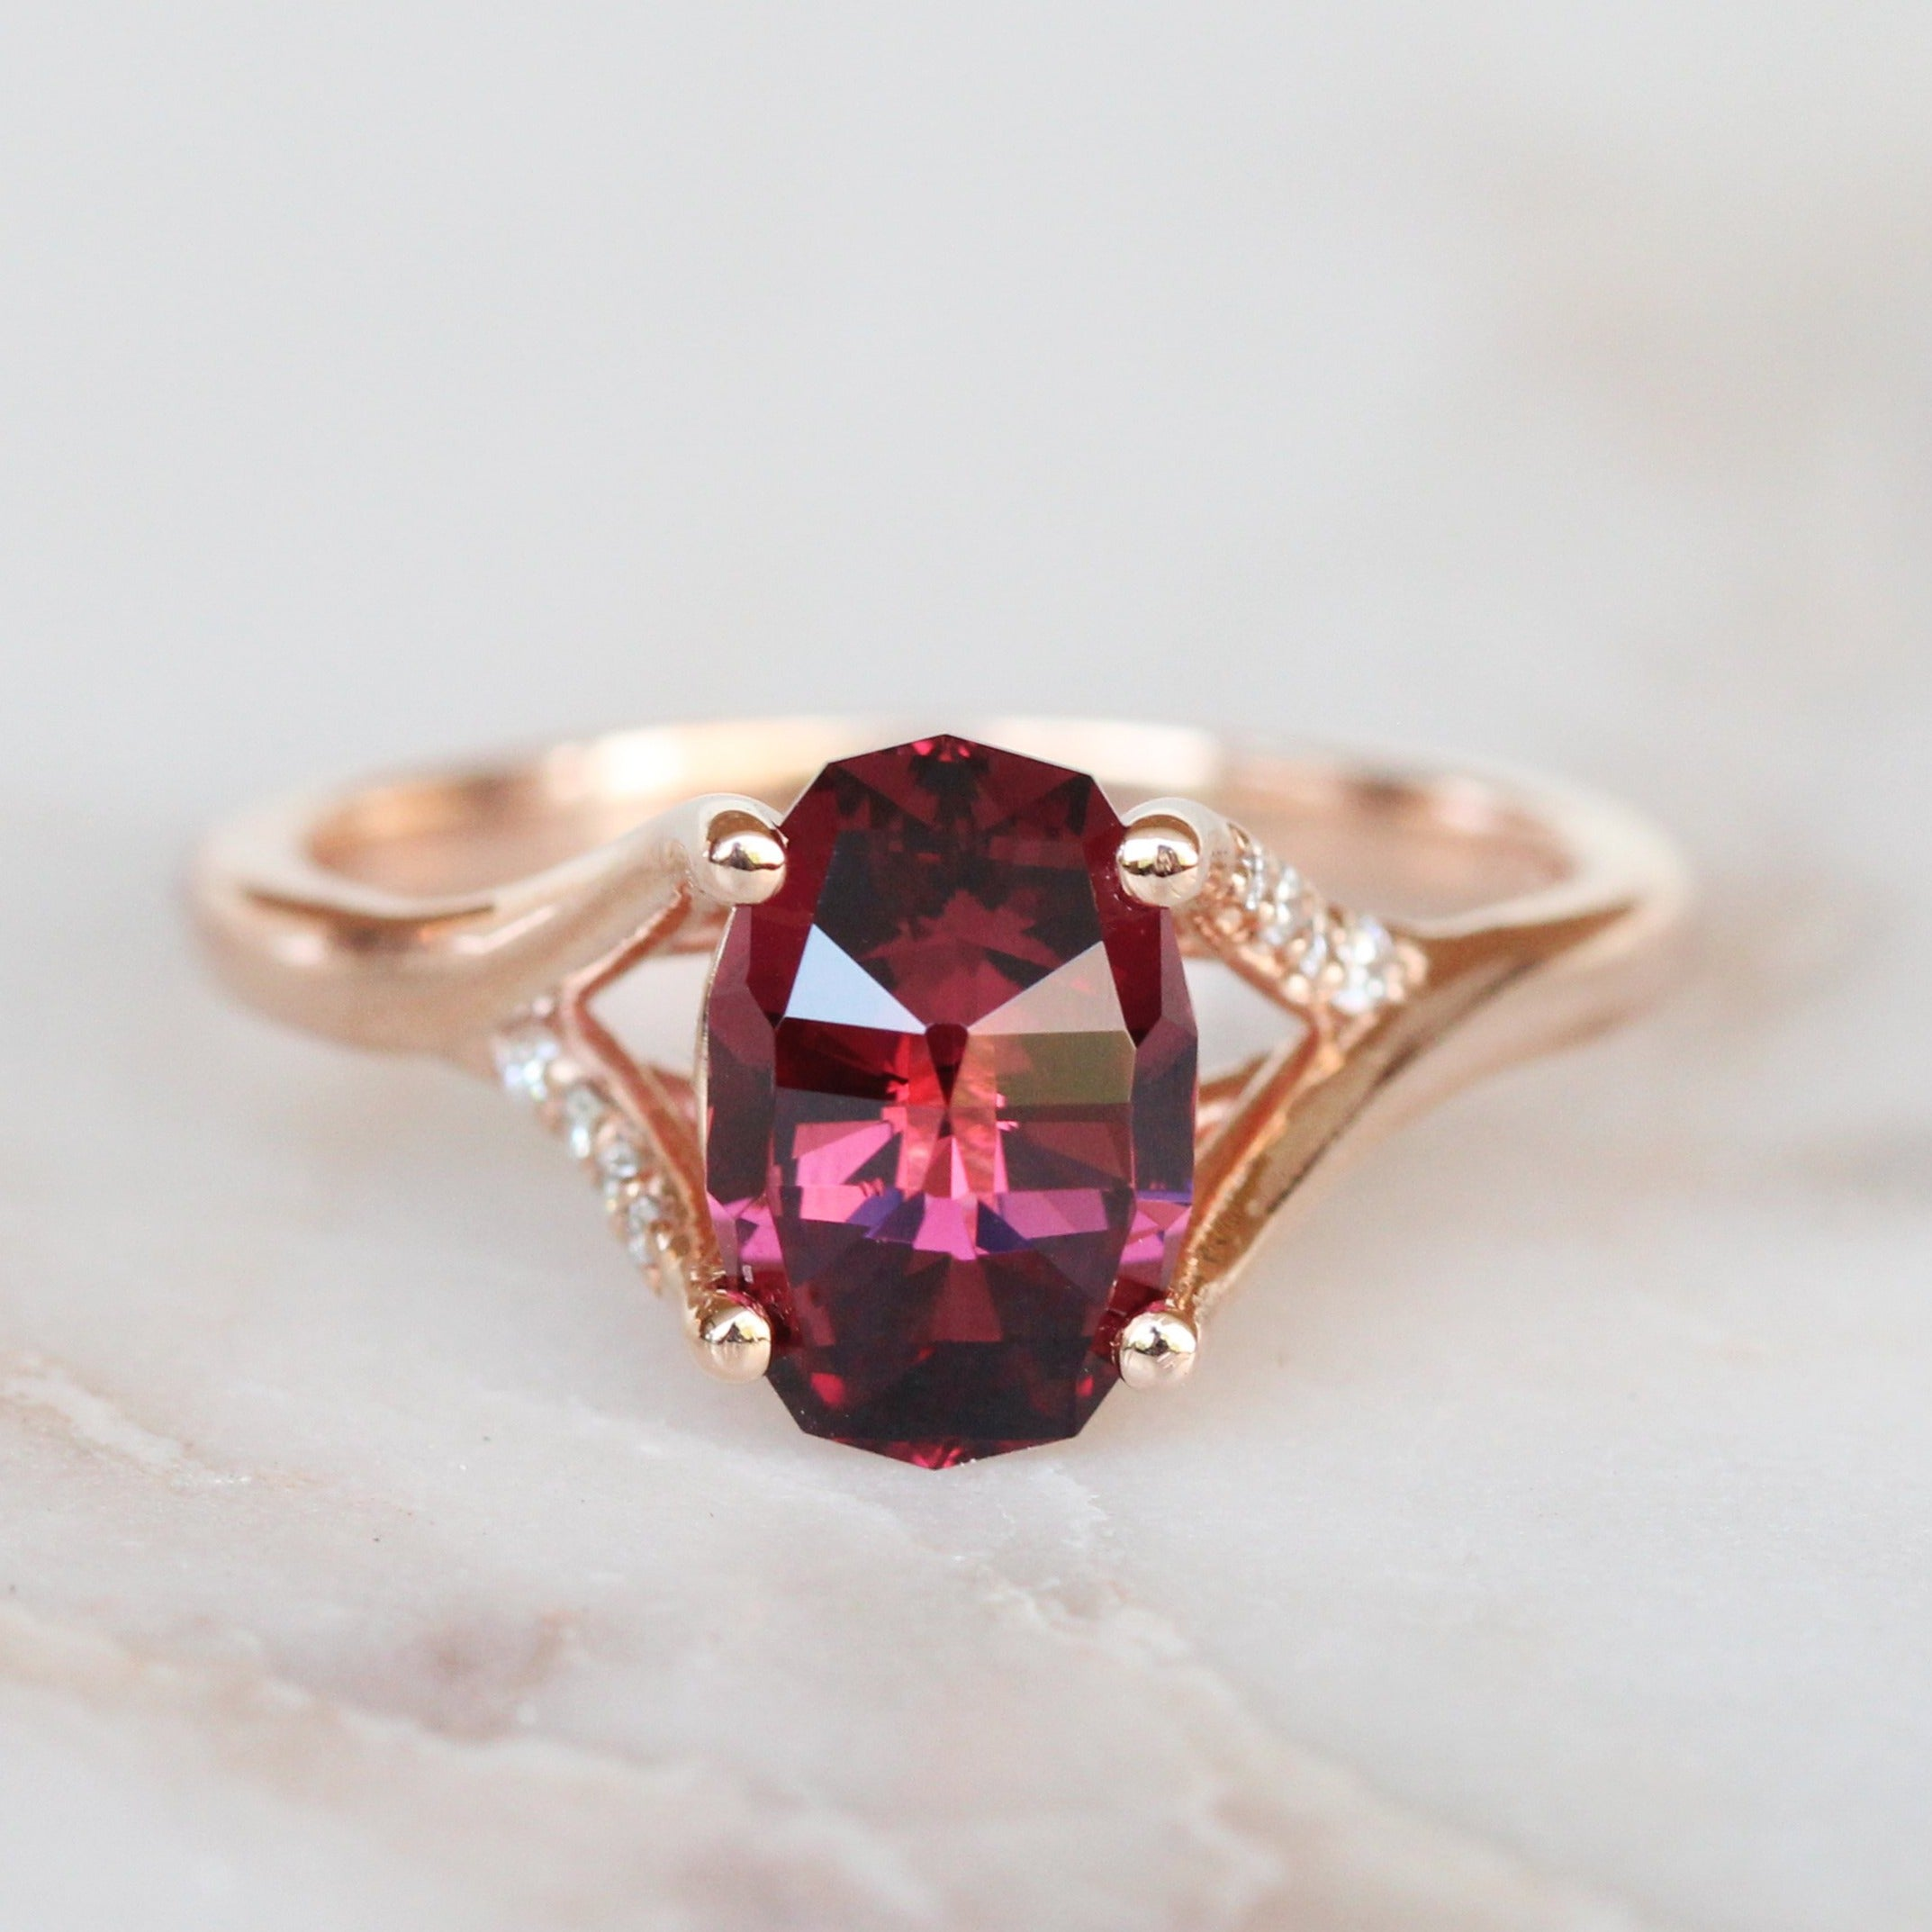 Kennedy Ring with Geometric Oval Garnet + Diamonds - Ready to Size and Ship - Salt & Pepper Celestial Diamond Engagement Rings and Wedding Bands  by Midwinter Co.